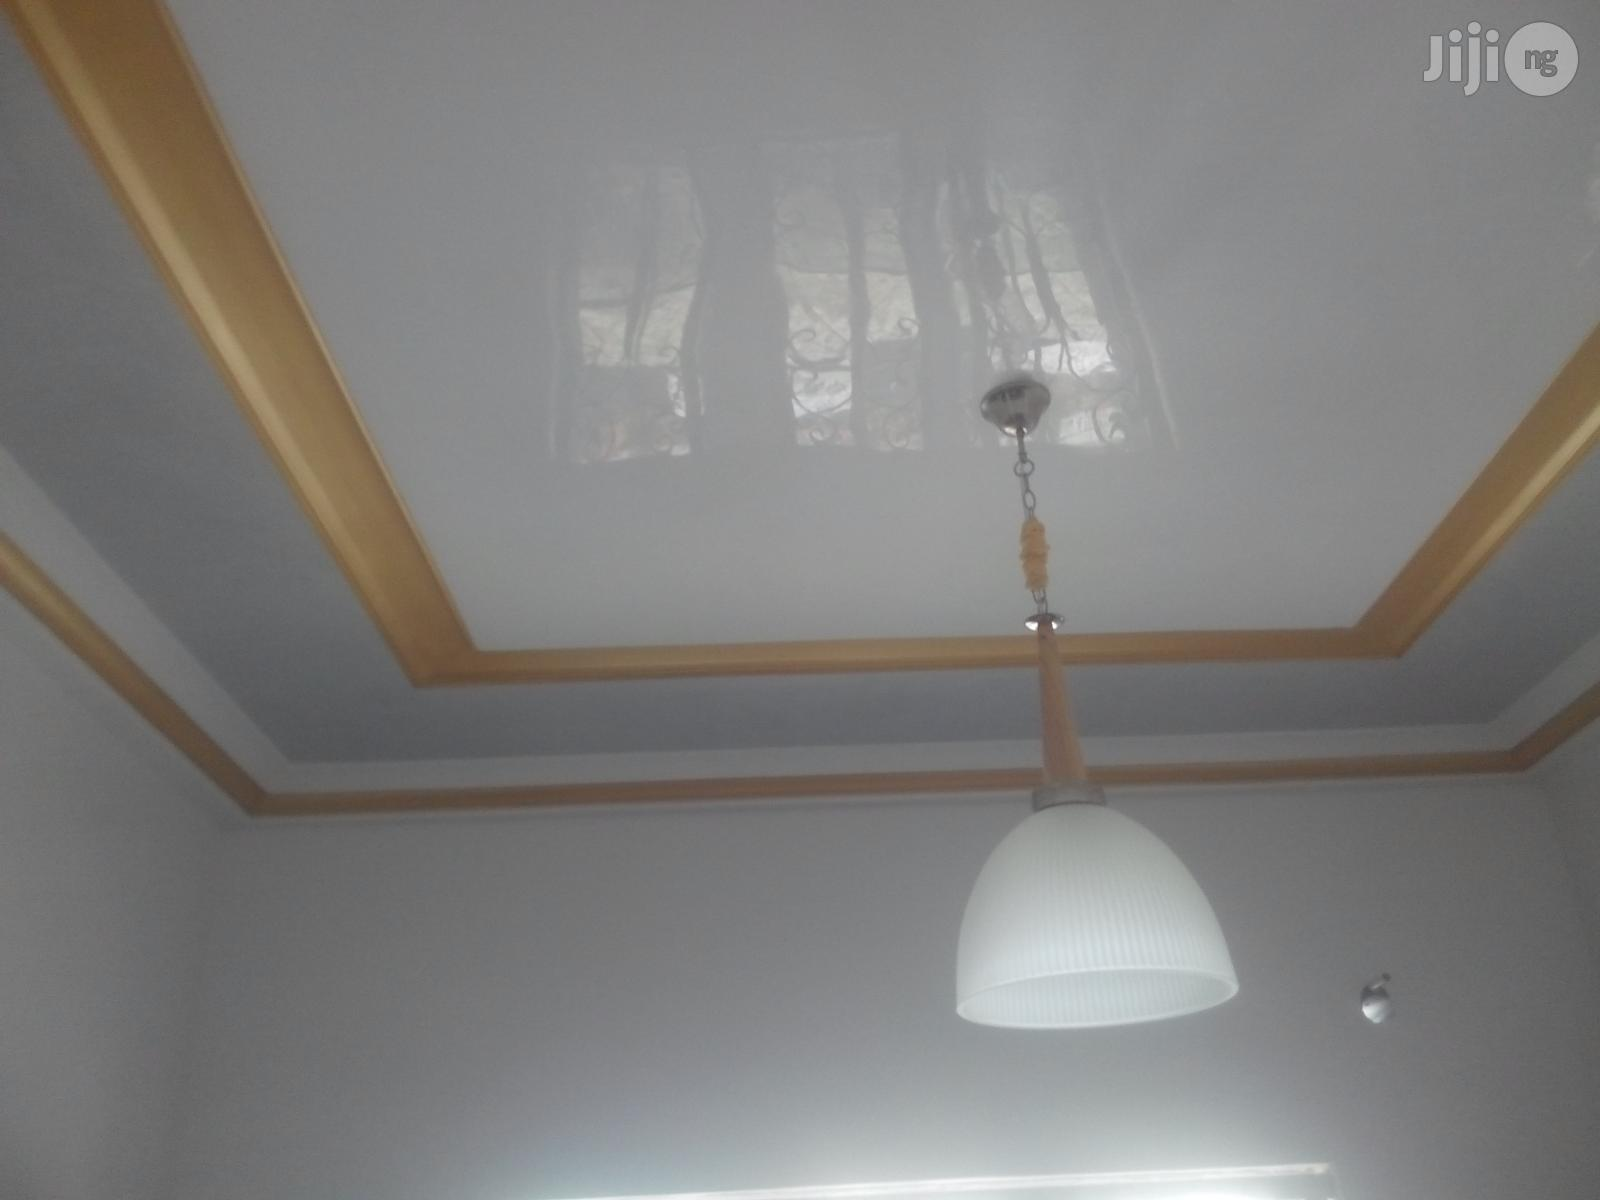 Polystyrene Canopy, Facials, Walls Ceiling's, Piller And Windows Hud | Building & Trades Services for sale in Jos, Plateau State, Nigeria